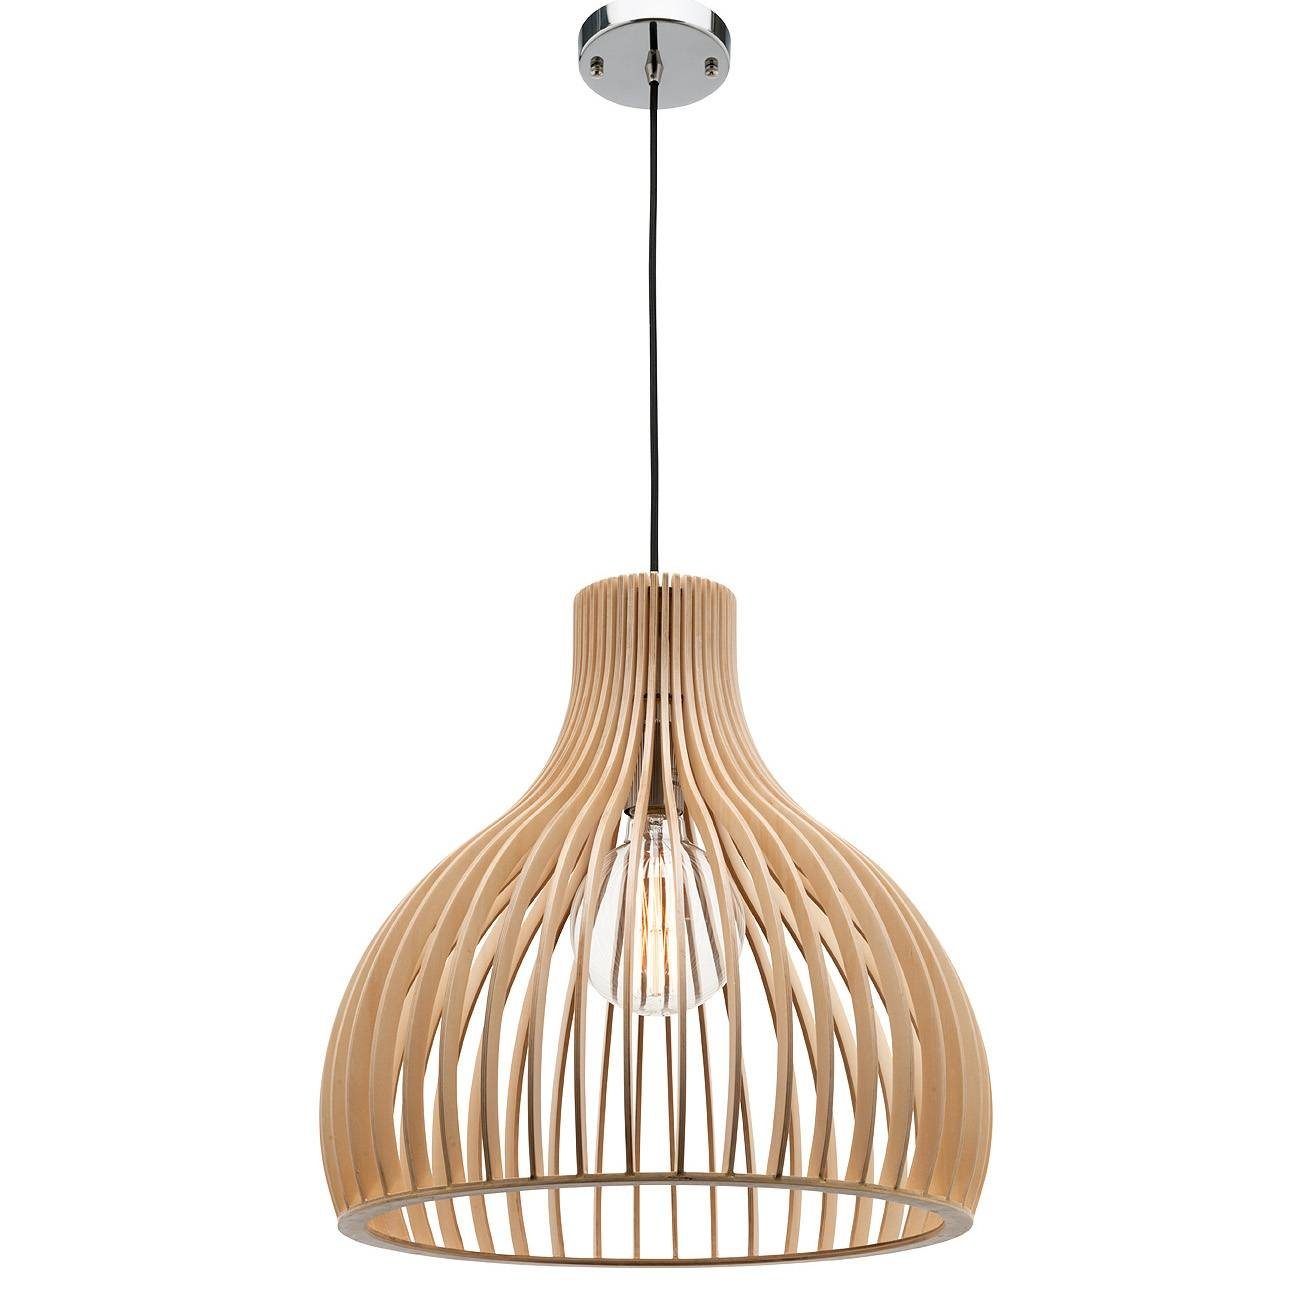 Led Pendant Lights – Lighting Matters with Wooden Pendant Lights Melbourne (Image 12 of 15)